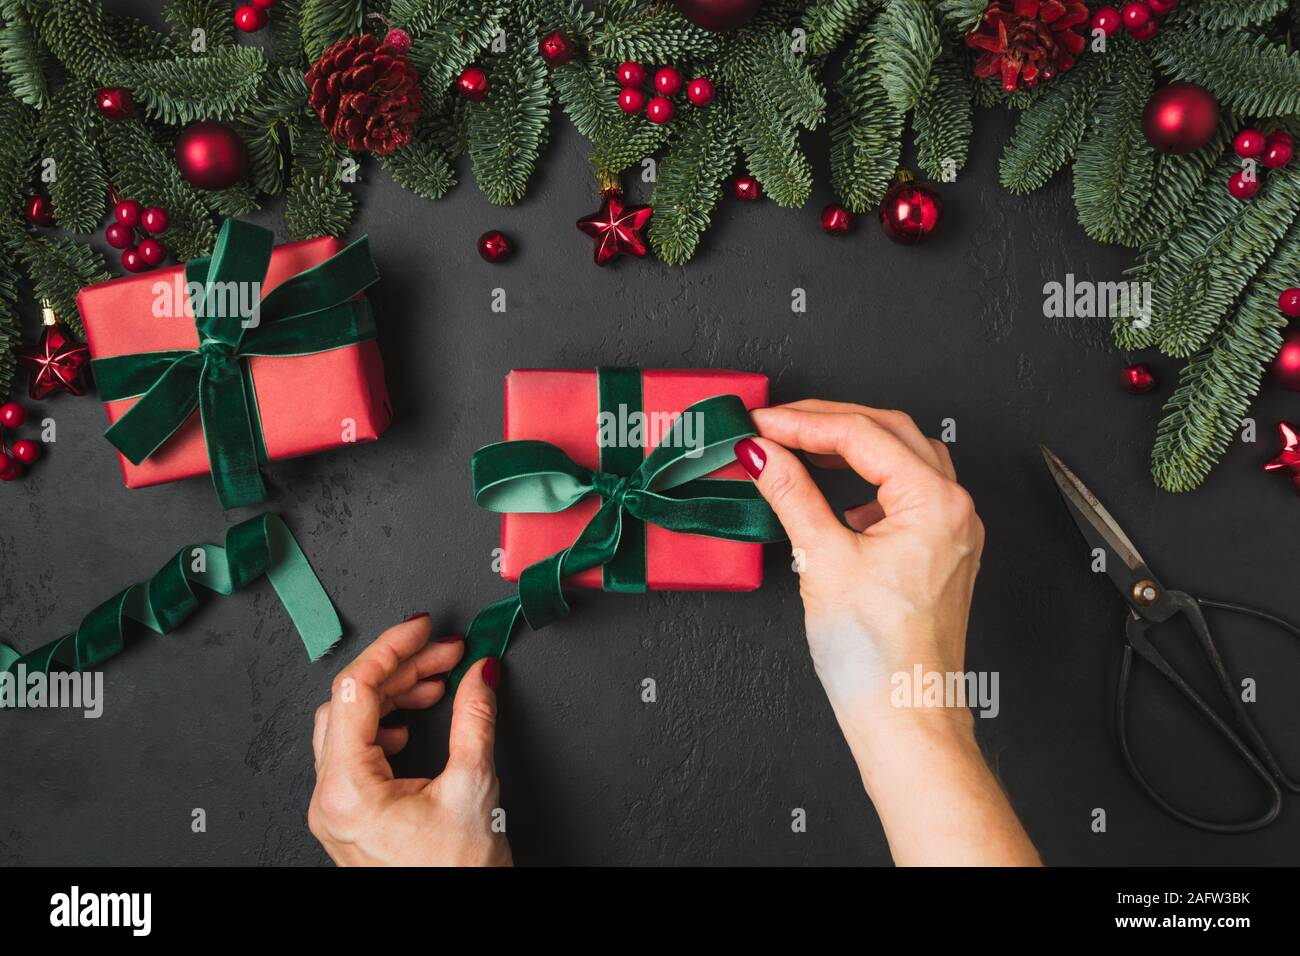 Red Velvet Christmas Balls High Resolution Stock Photography And Images Alamy